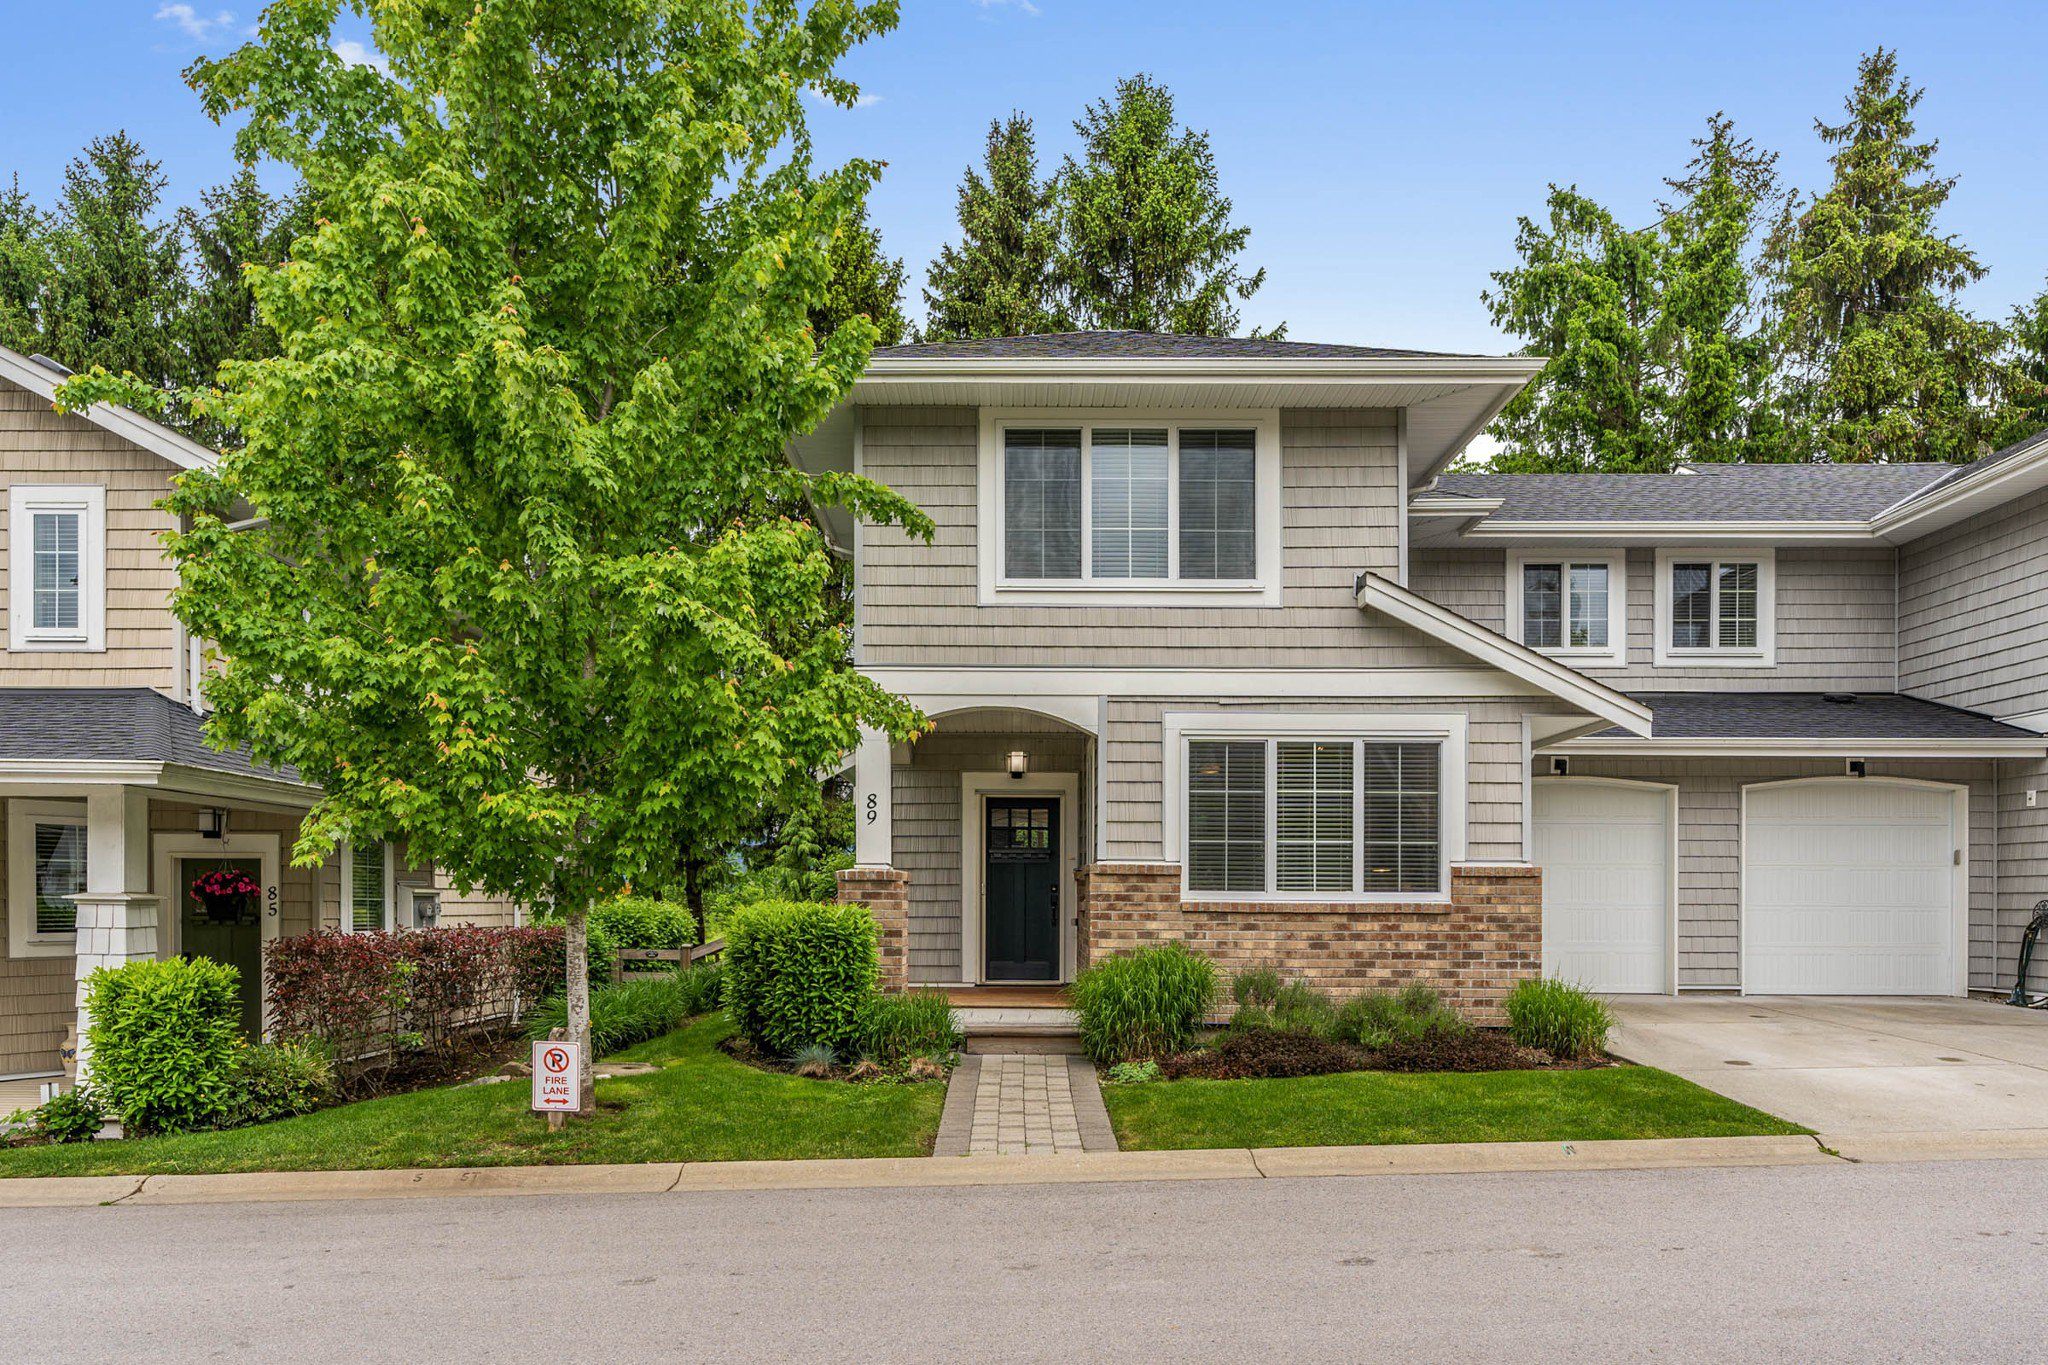 """Main Photo: 89 12161 237 Street in Maple Ridge: East Central Townhouse for sale in """"VILLAGE GREEN"""" : MLS®# R2458222"""